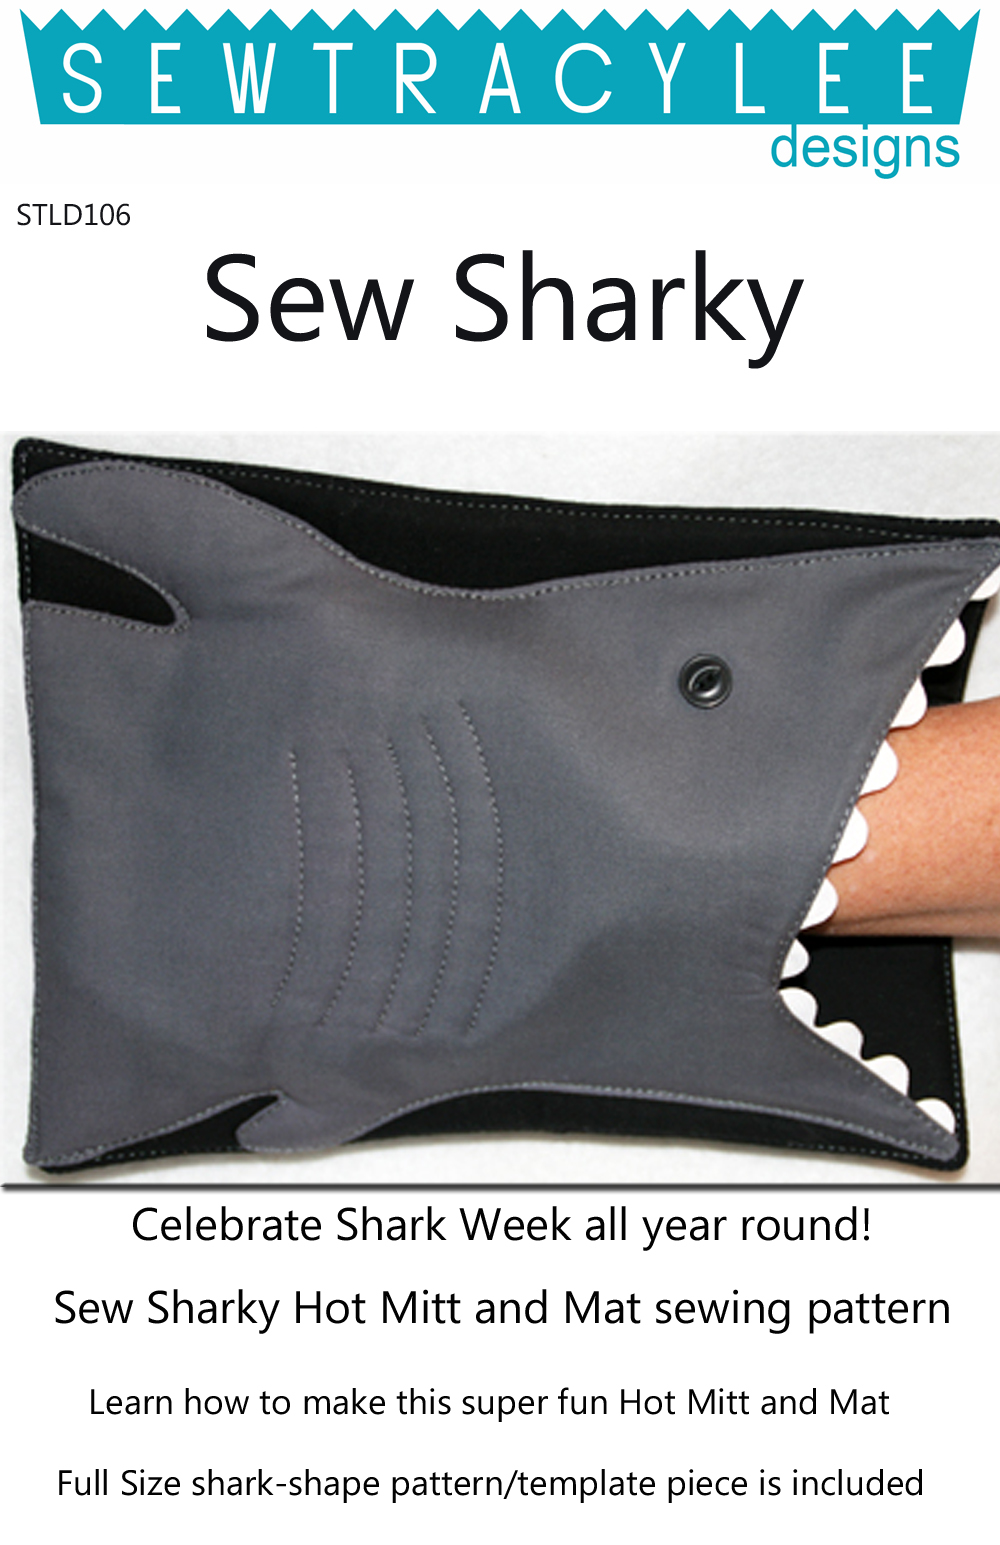 Sew-Sharky-sewing-pattern-Sew-TracyLee-Designs-front